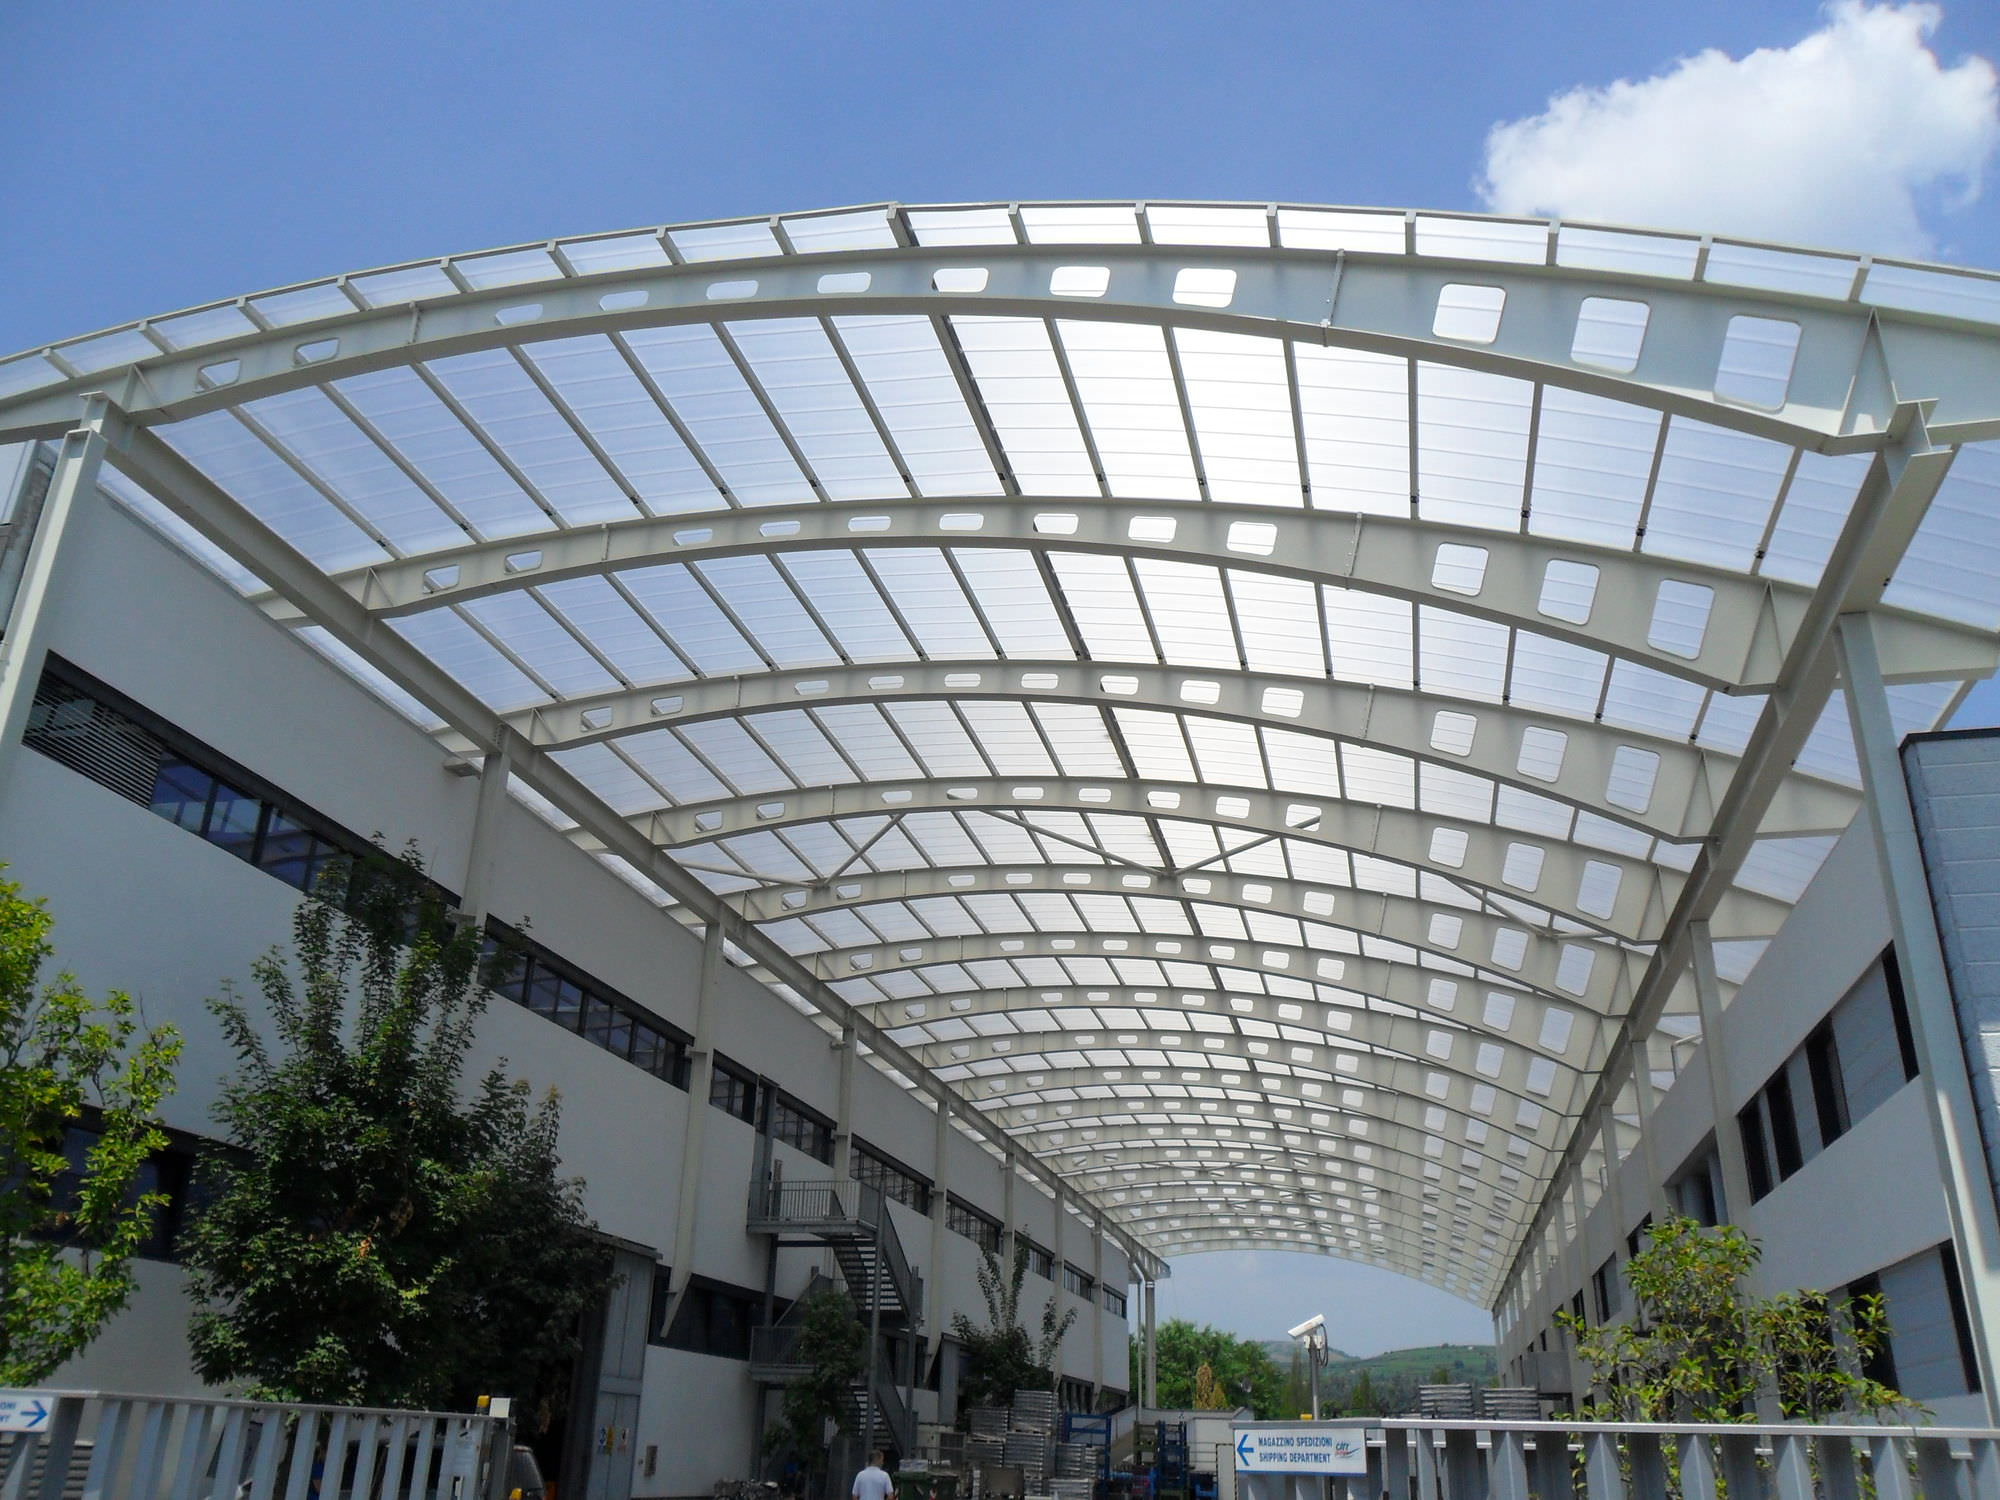 Polycarbonate roofing panels